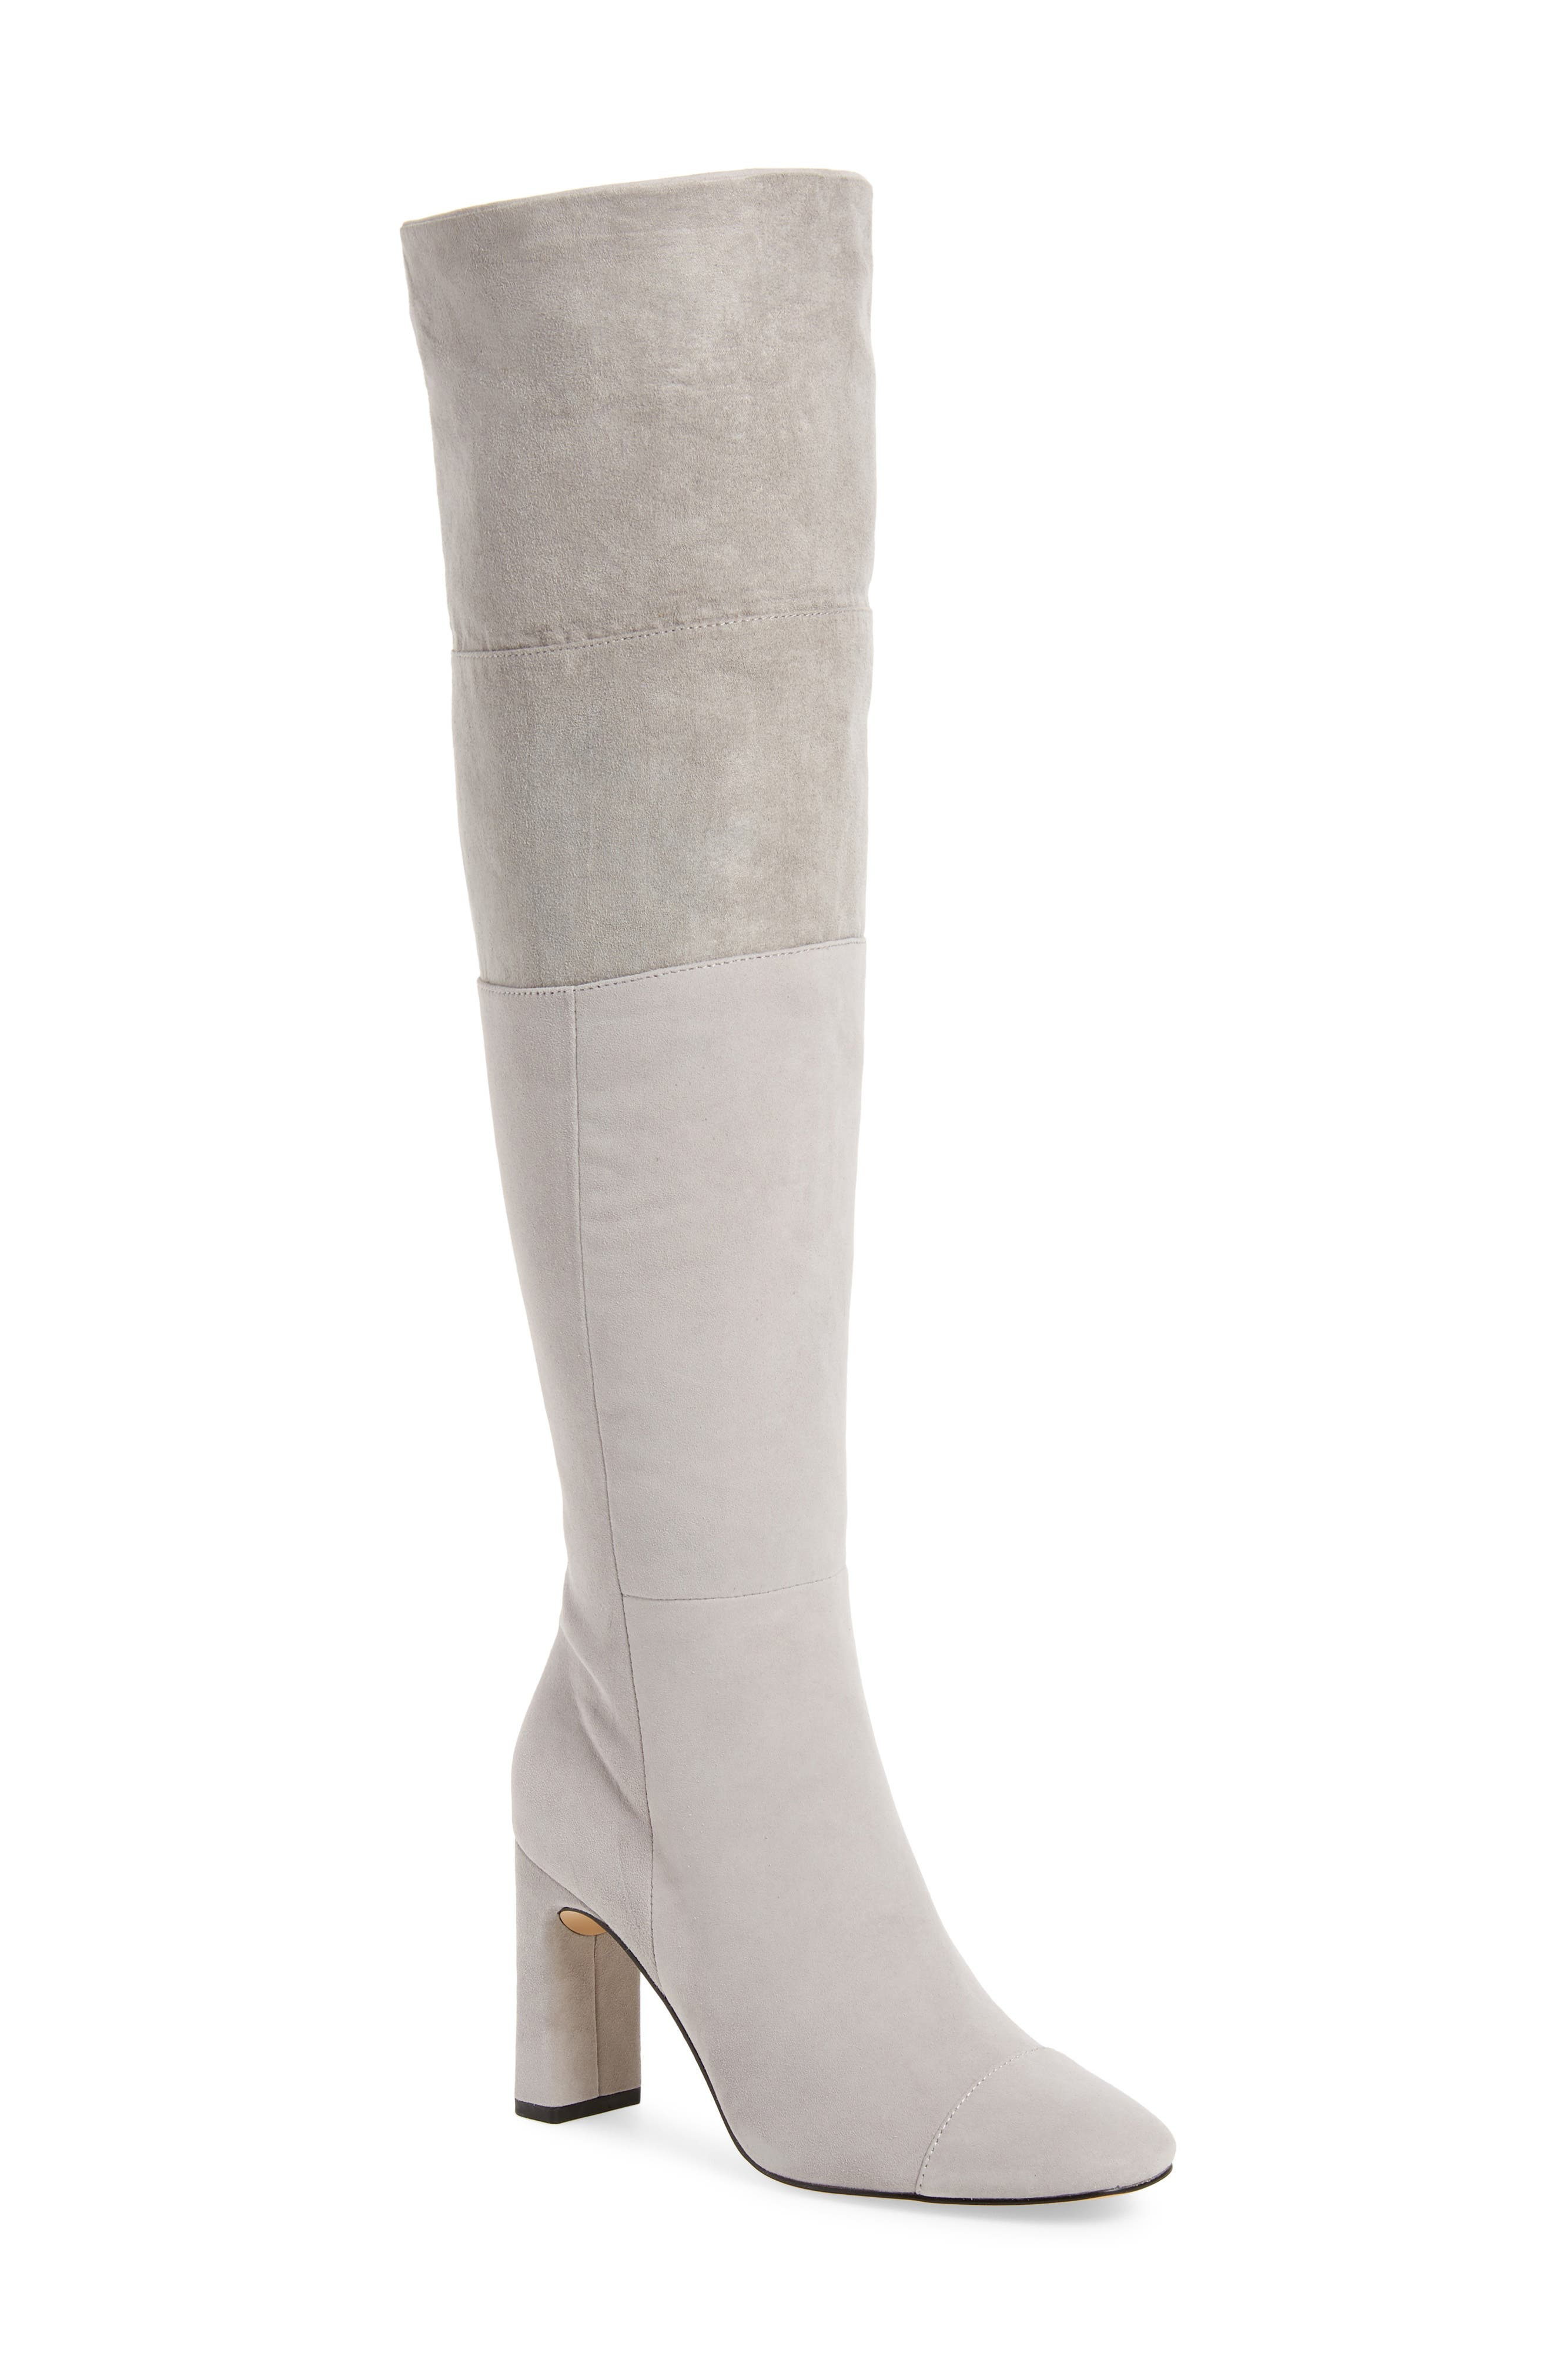 Mia Knee High Boot,                             Alternate thumbnail 2, color,                             LIGHT GREY SUEDE